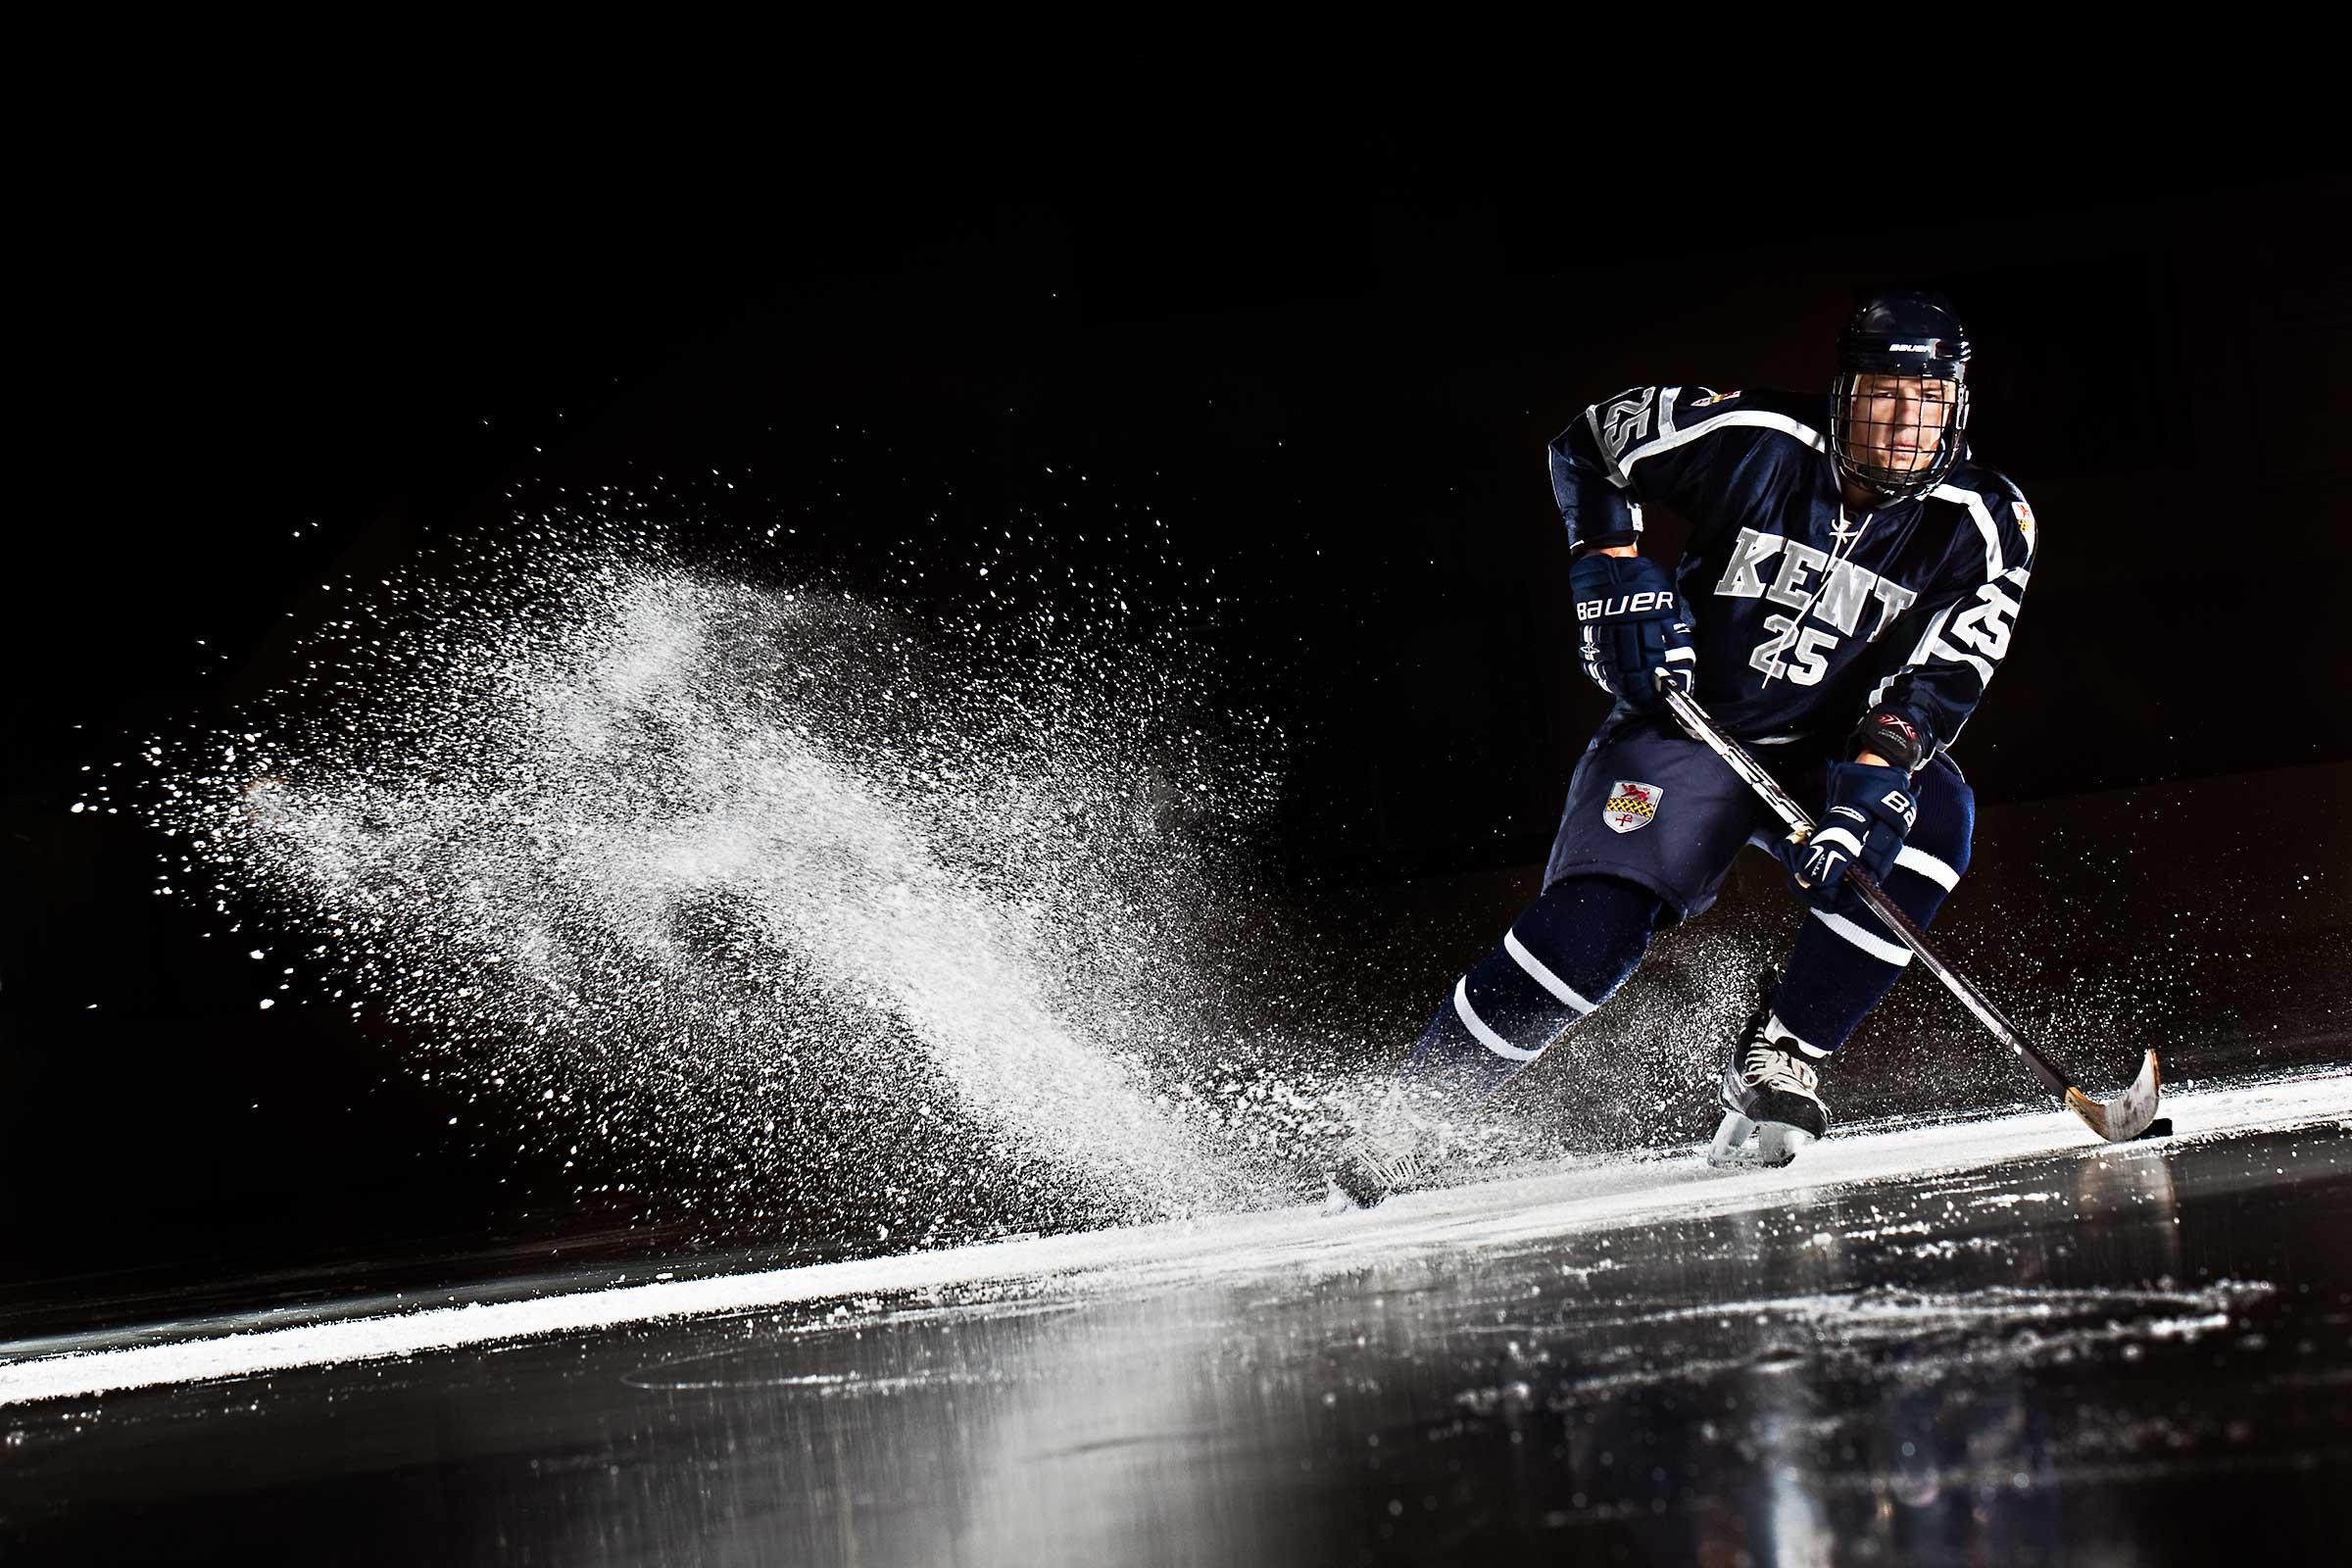 Dramatically lit action shot of Hockey player kicking up a wave of ice in Hockey arena